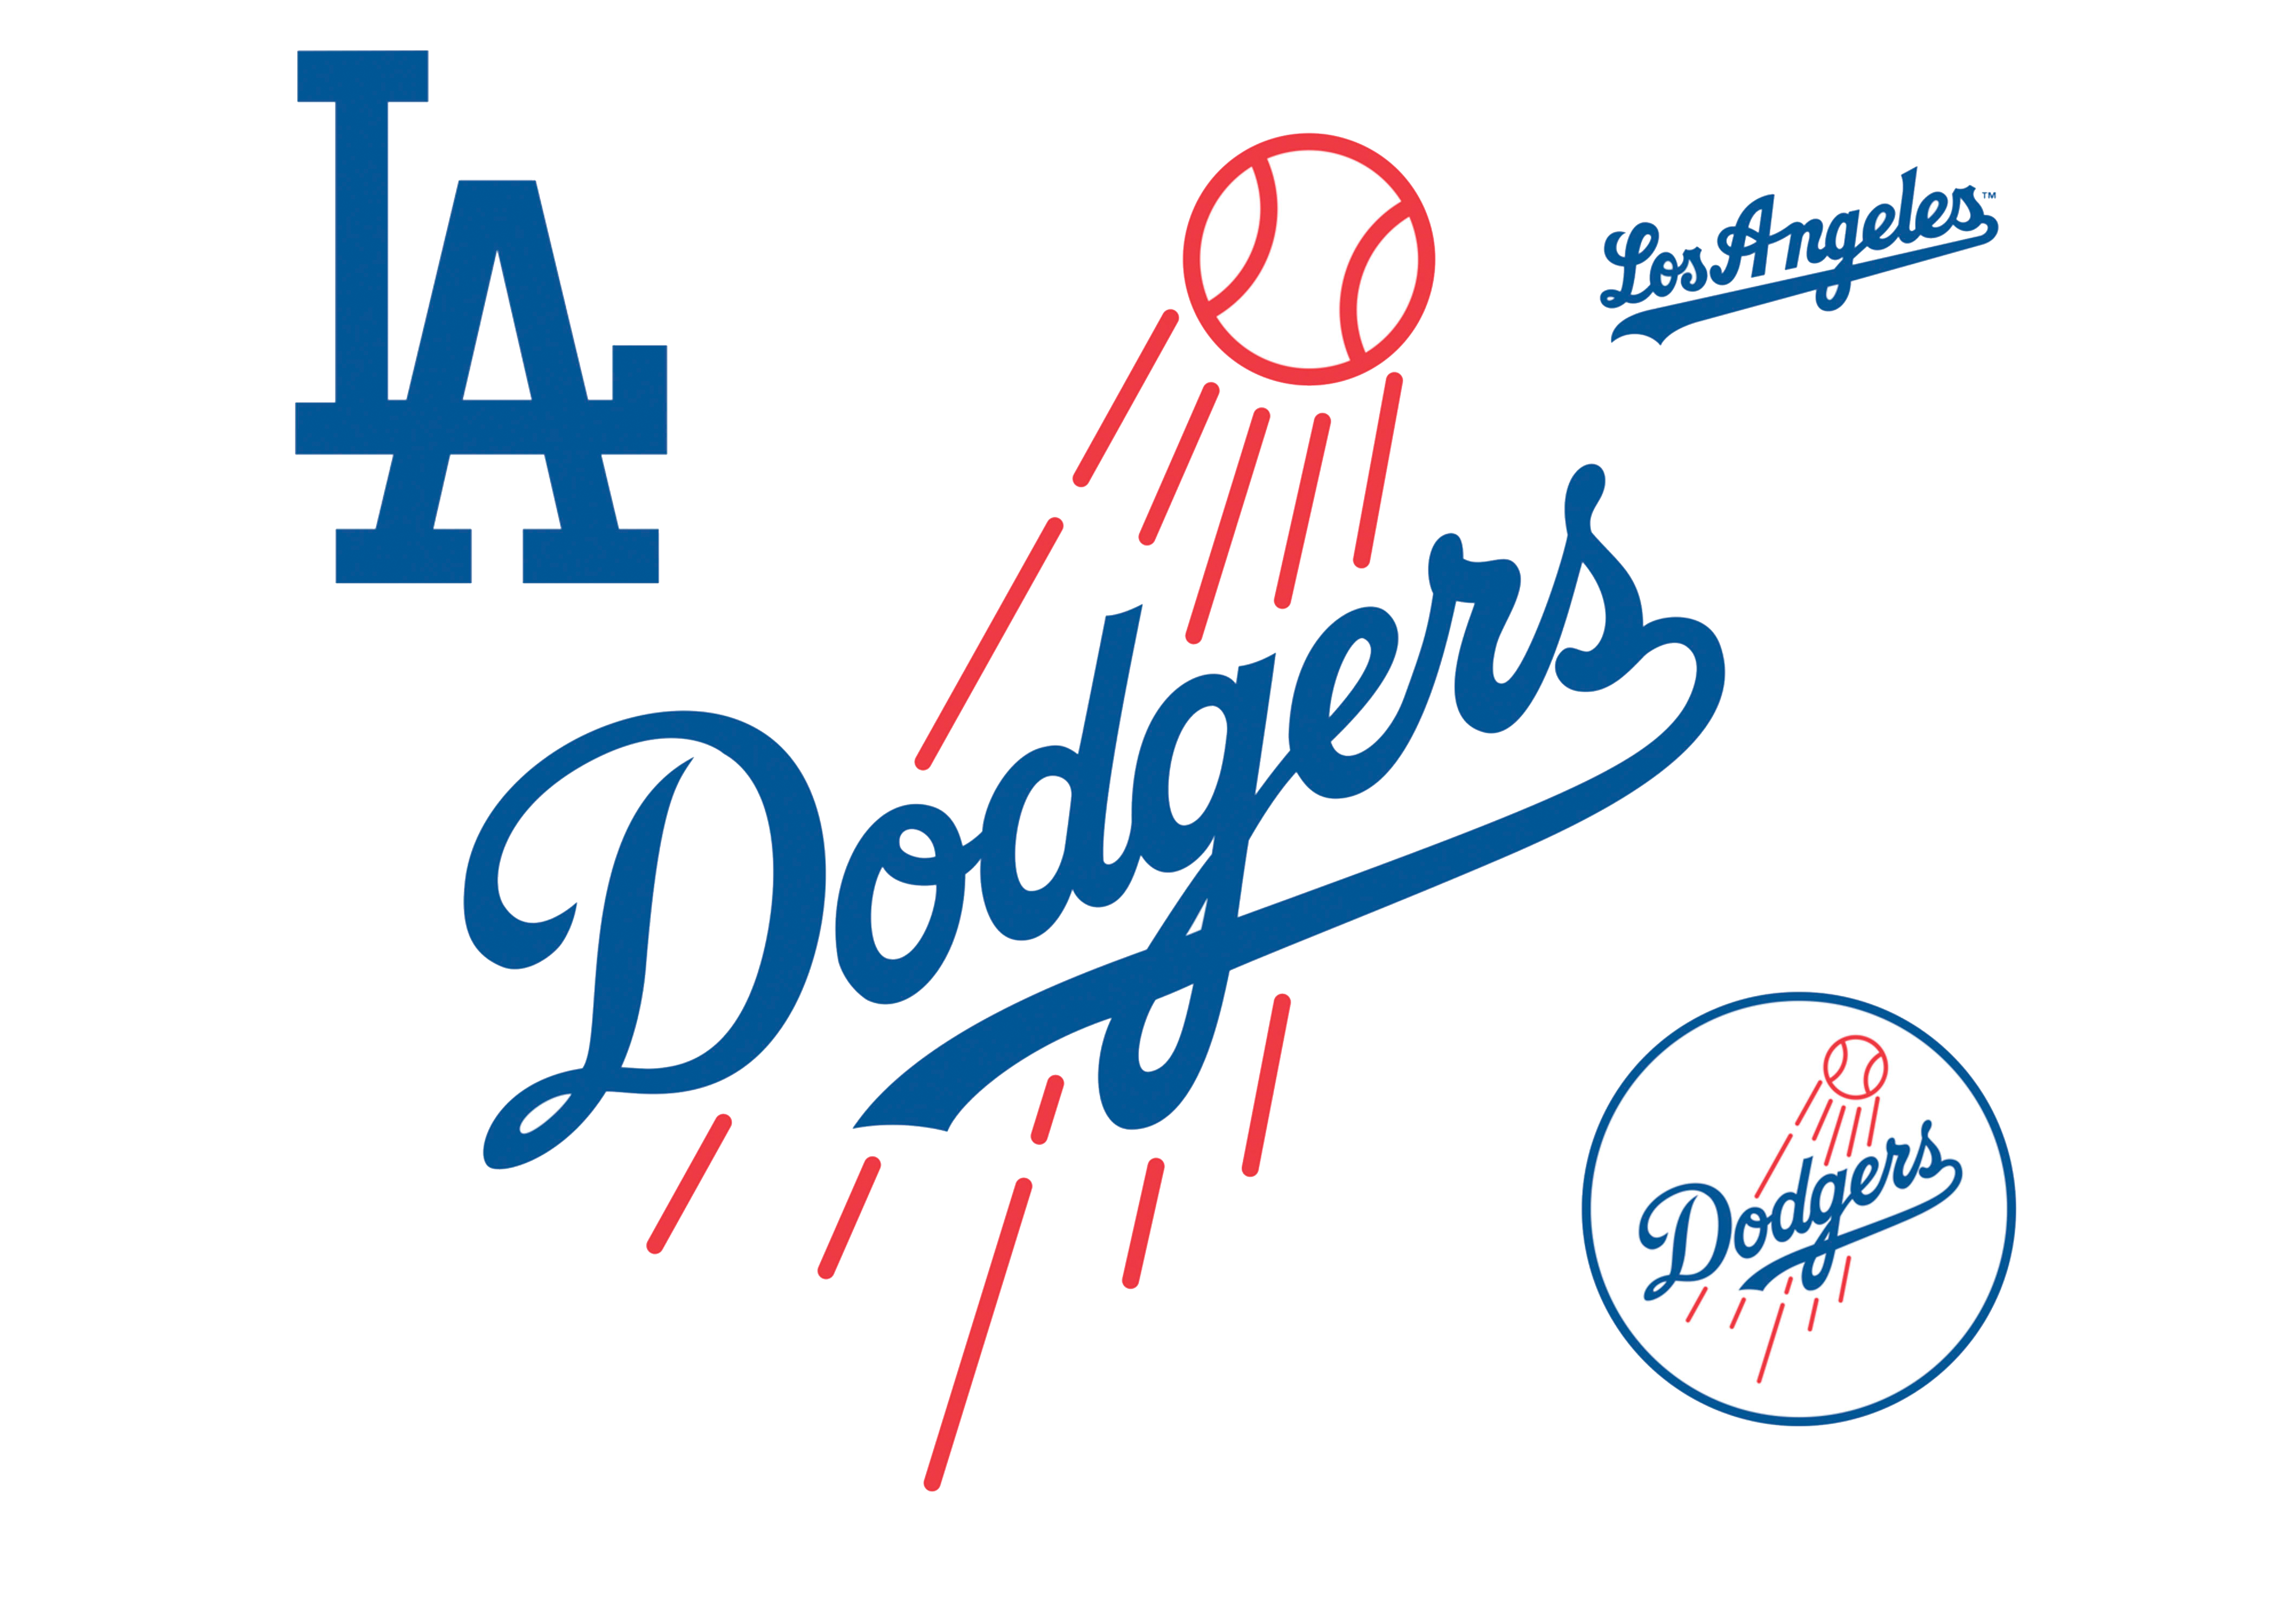 Dodgers vector. All logos png image